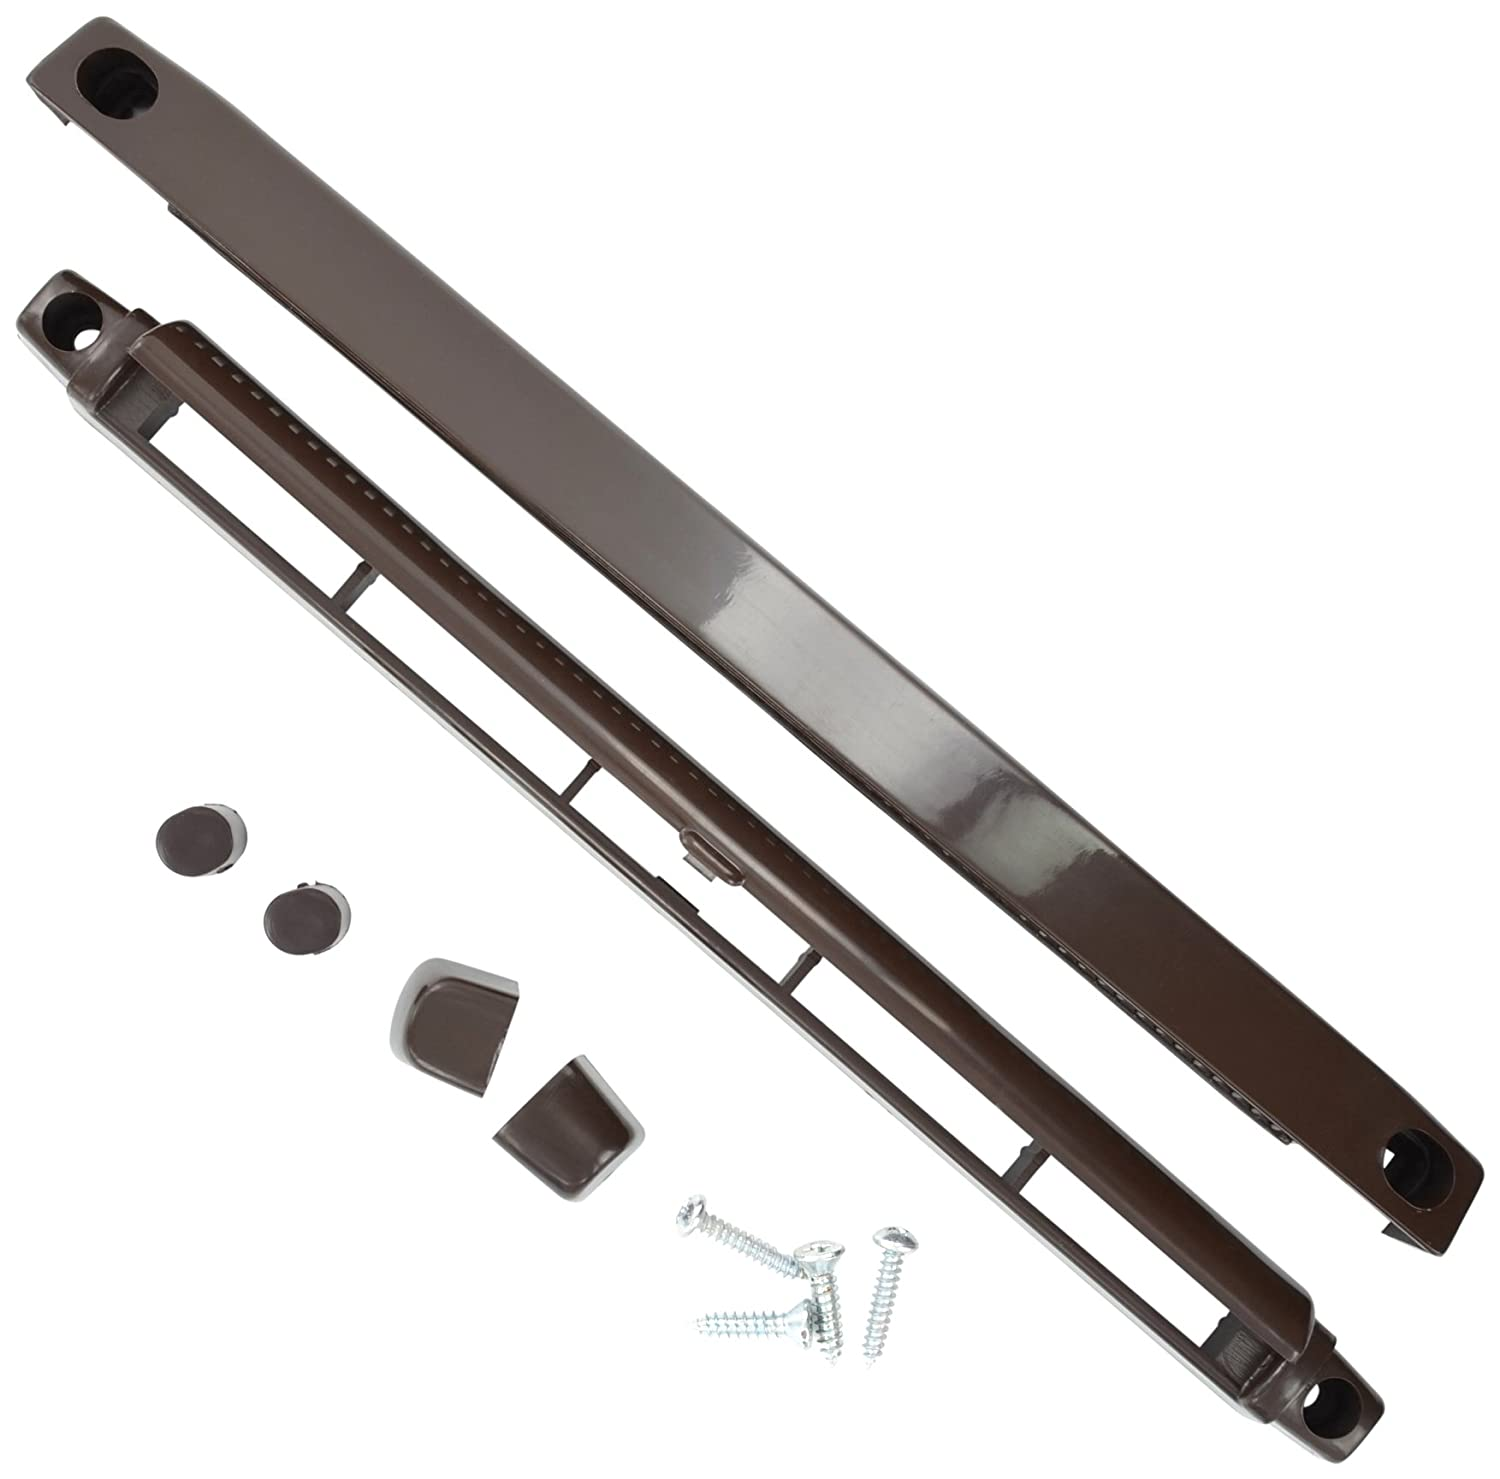 Bulk Hardware BH03174 Windows and Door Fully Adjustable Trickle Vent, 260mm (10.4 inch) - Brown